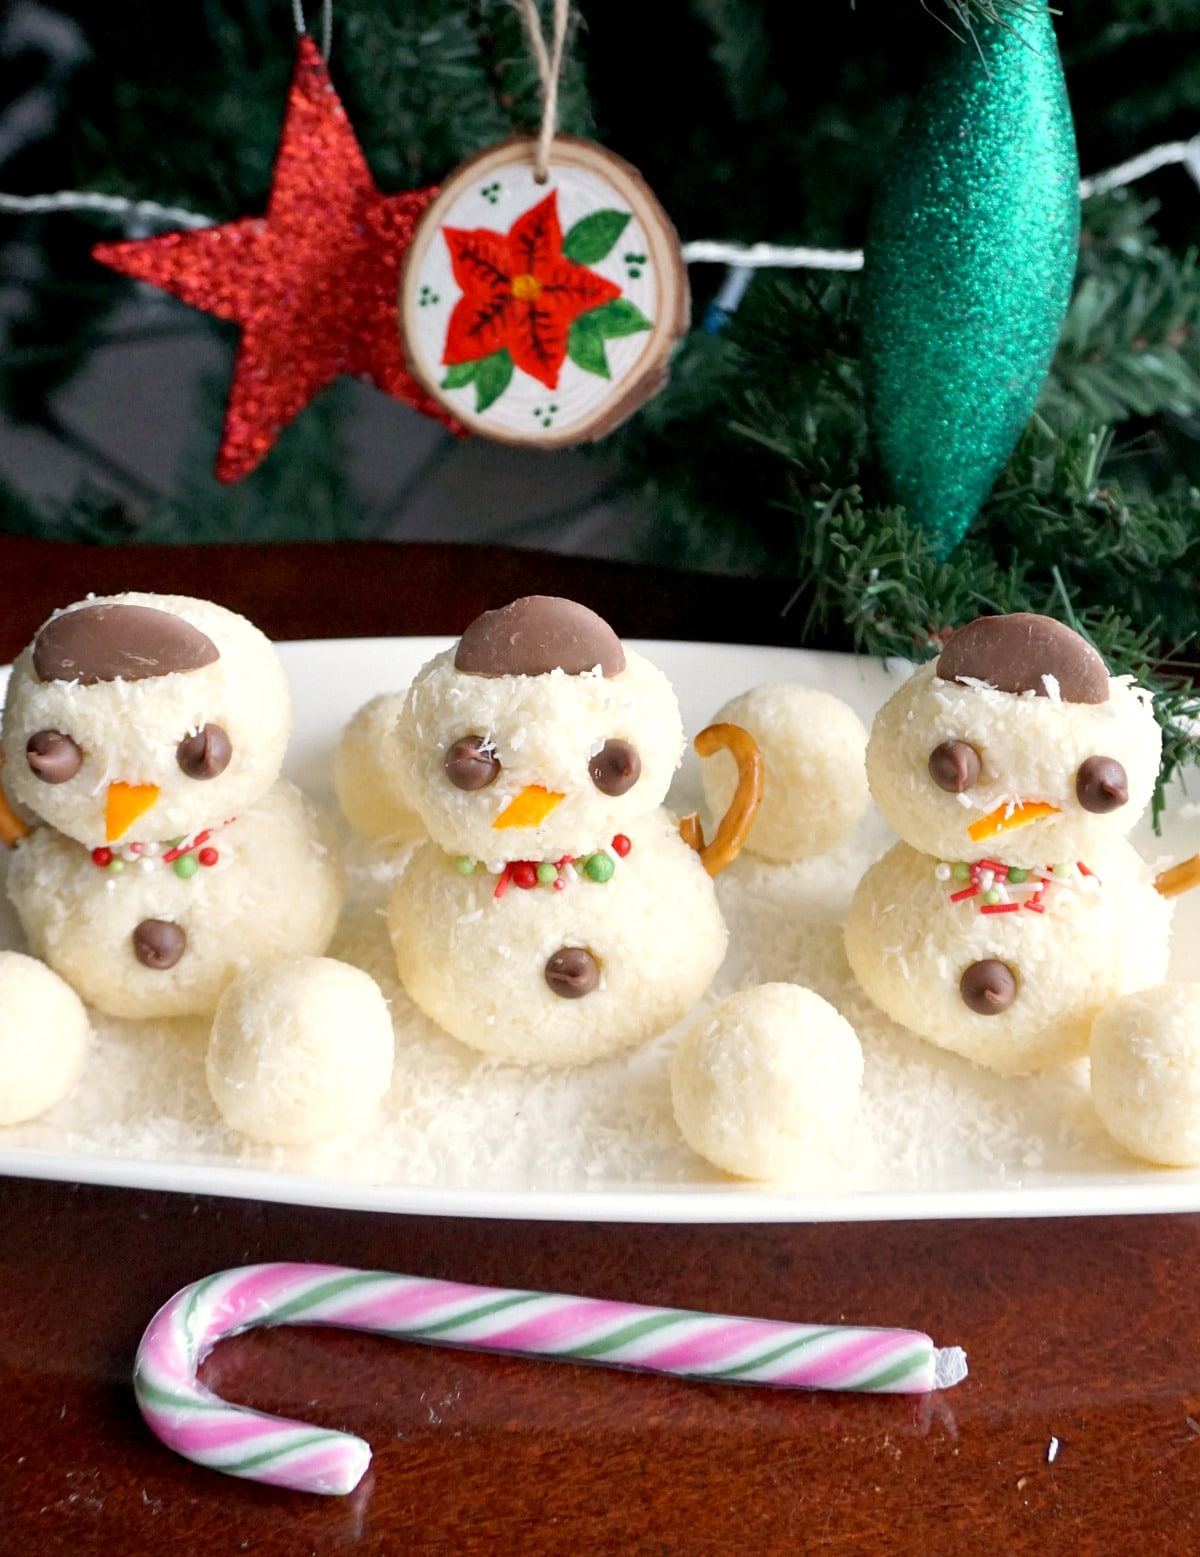 3 snowman truffles on a white rectangular plate with a Christmas tree in the background